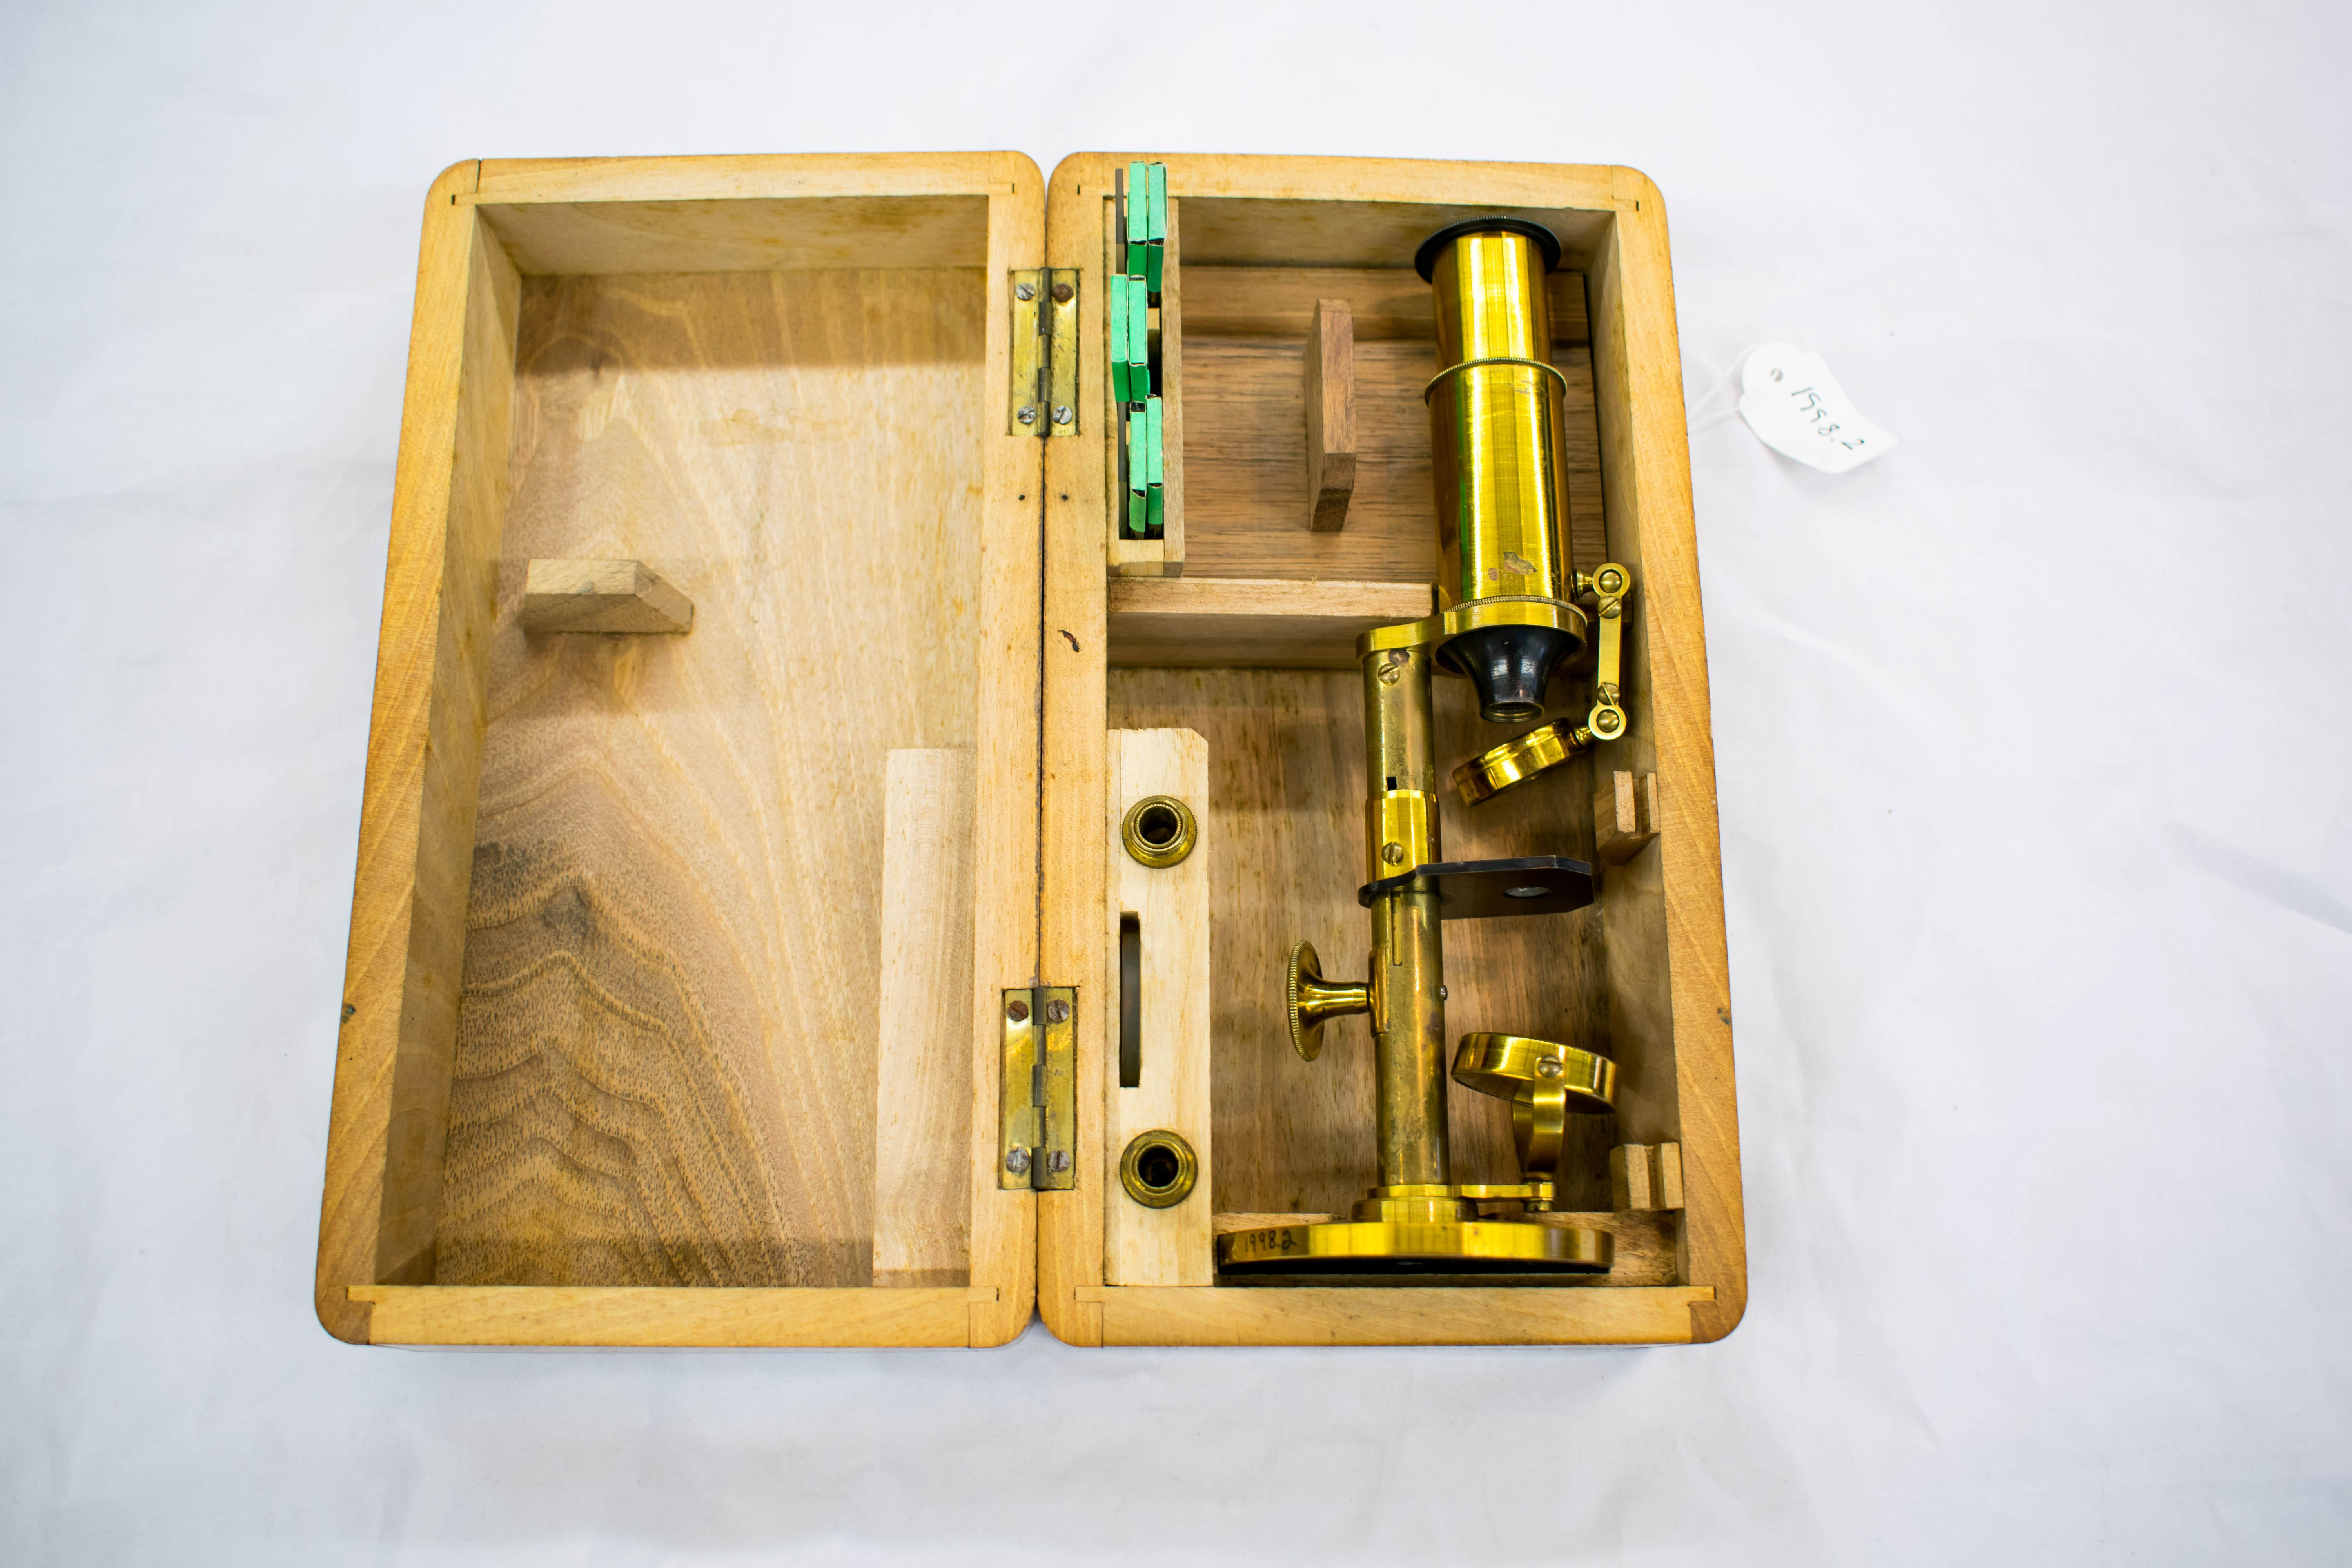 Microscope in a box